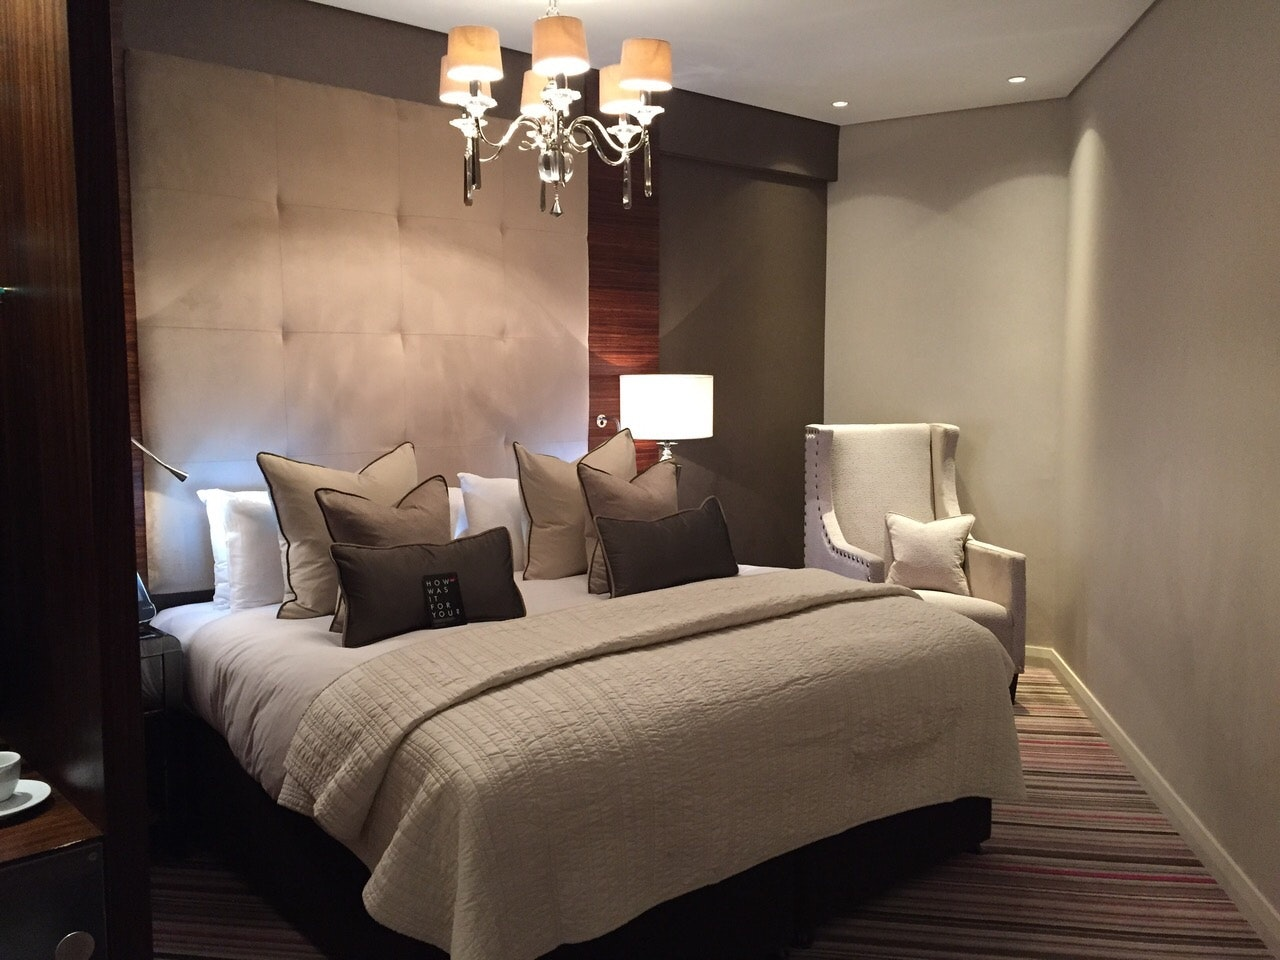 the chance to stay and dine in luxury at La Tour Birmingham.  sweepstakes